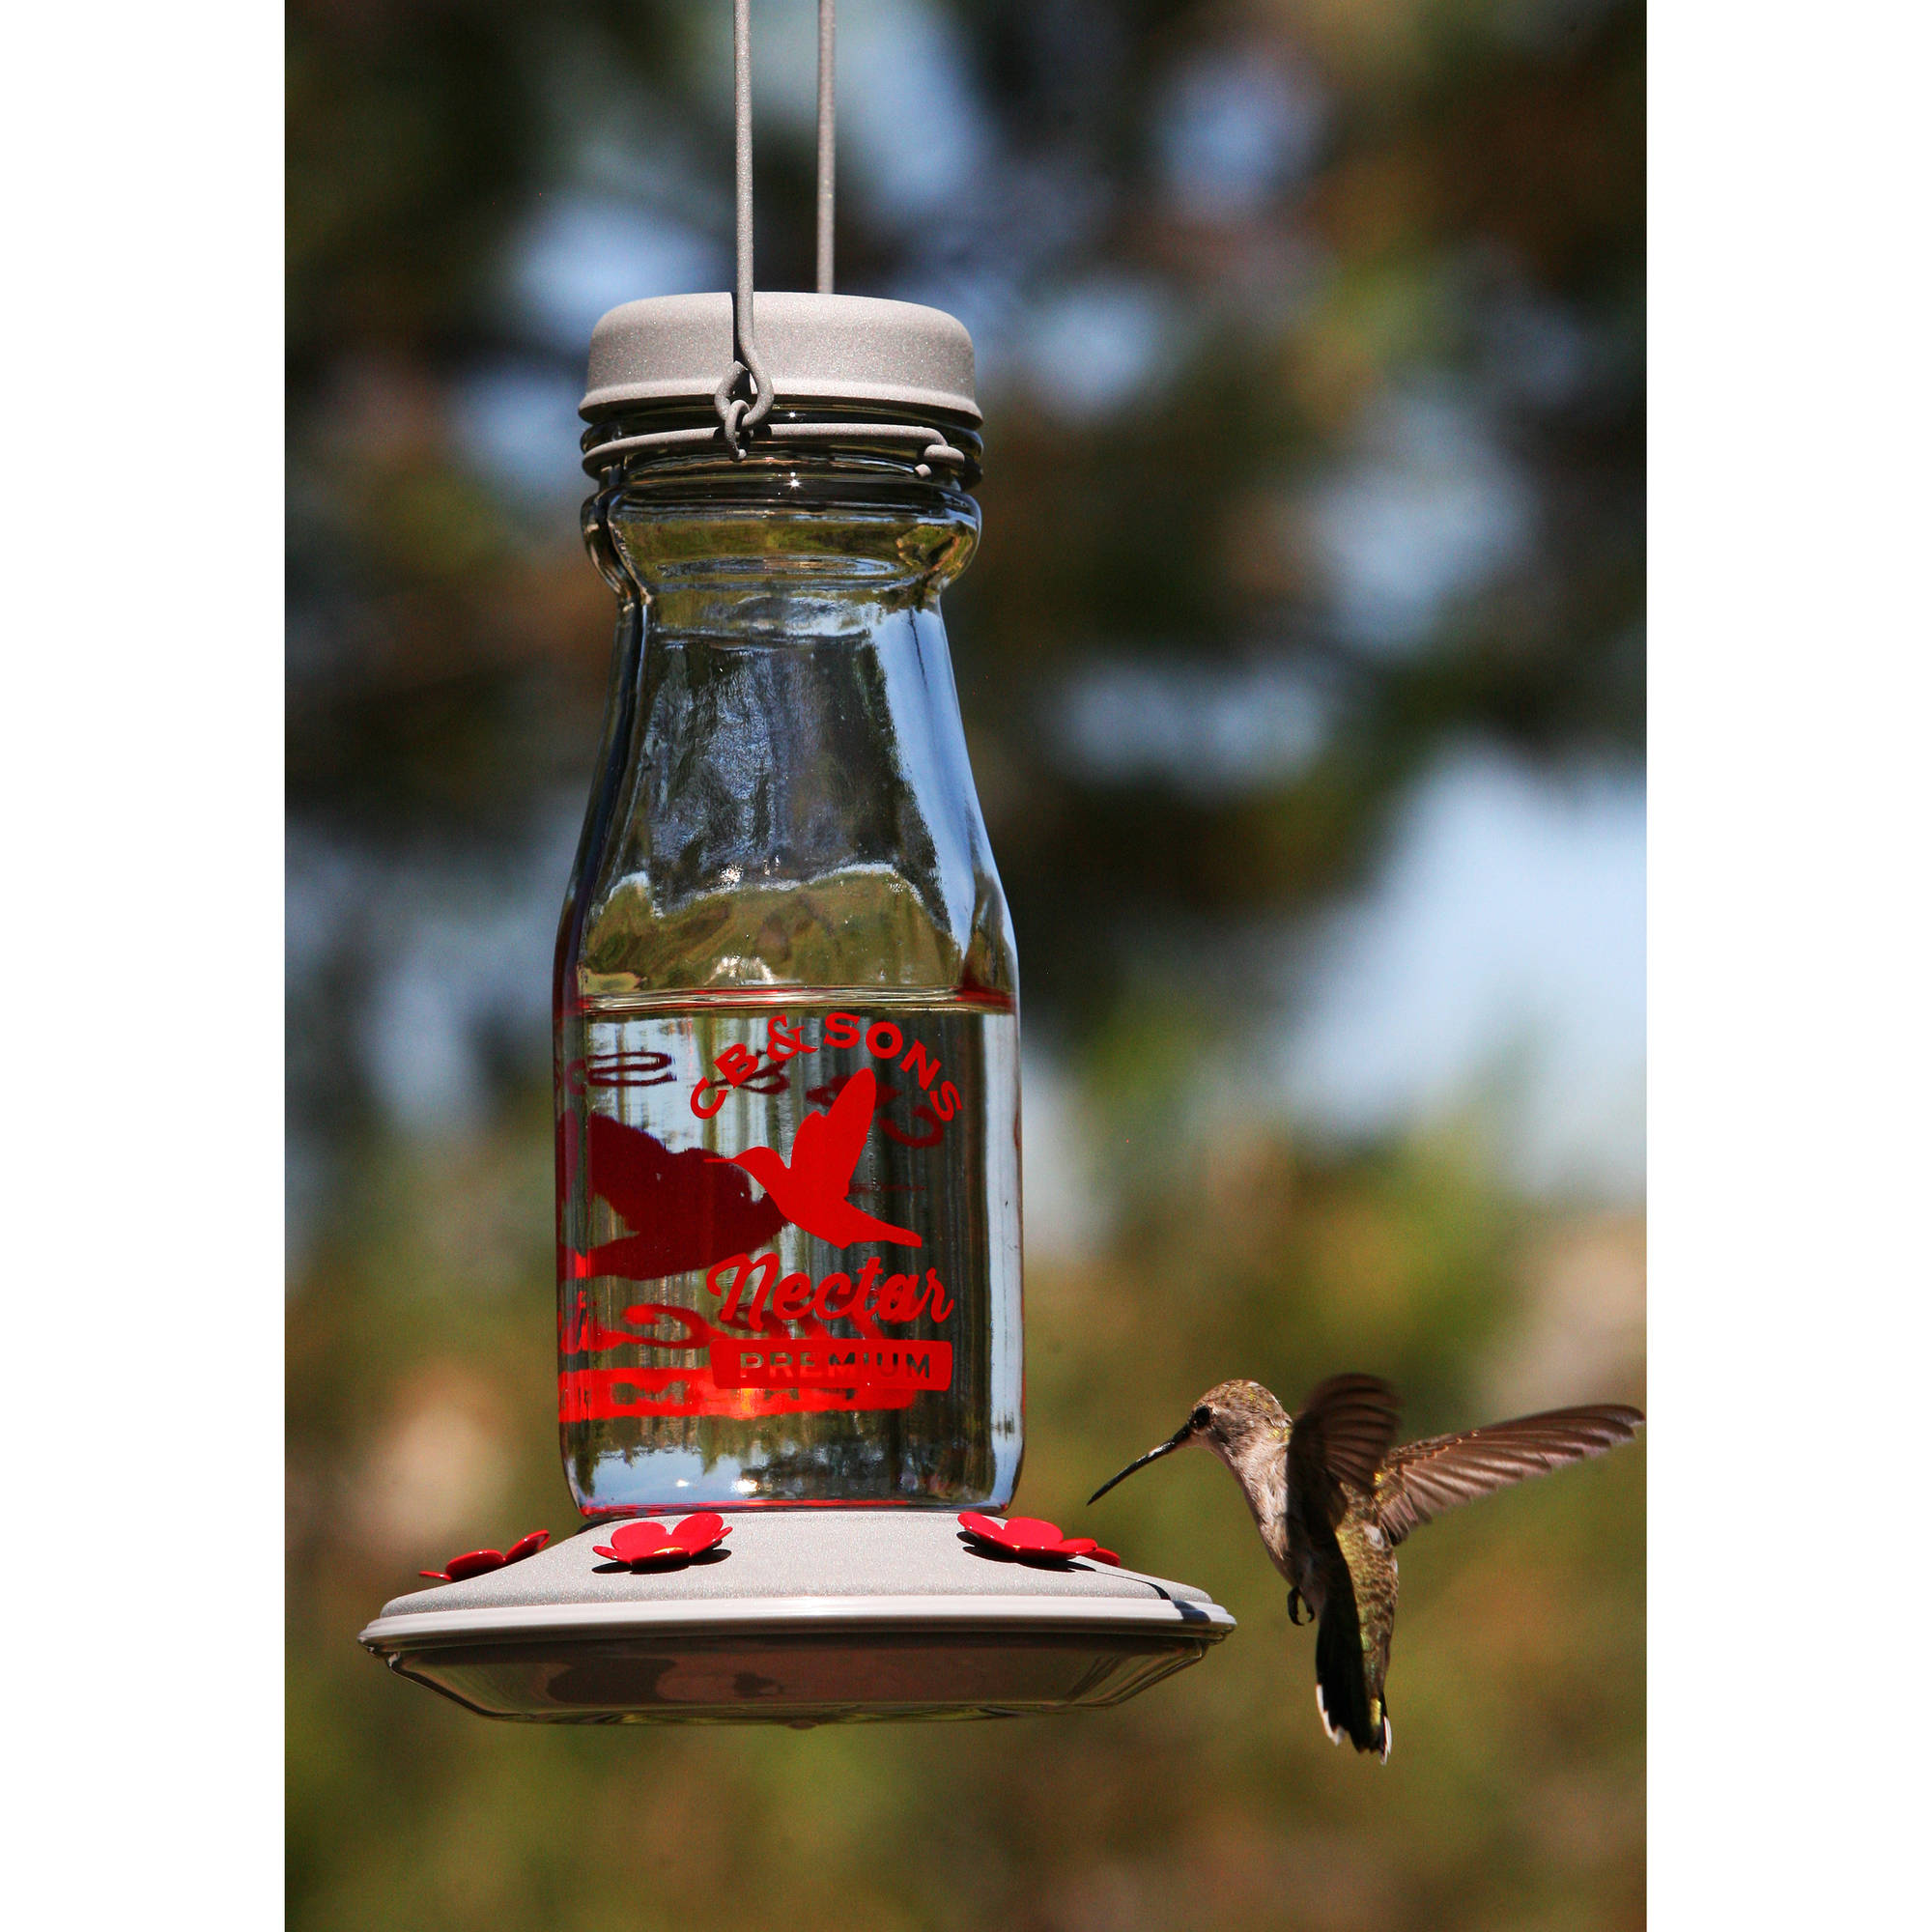 feeder ip hummingbird decorative fl glass jersey feeding com birds more vintage bottle with walmart stations oz feeders capacity milk